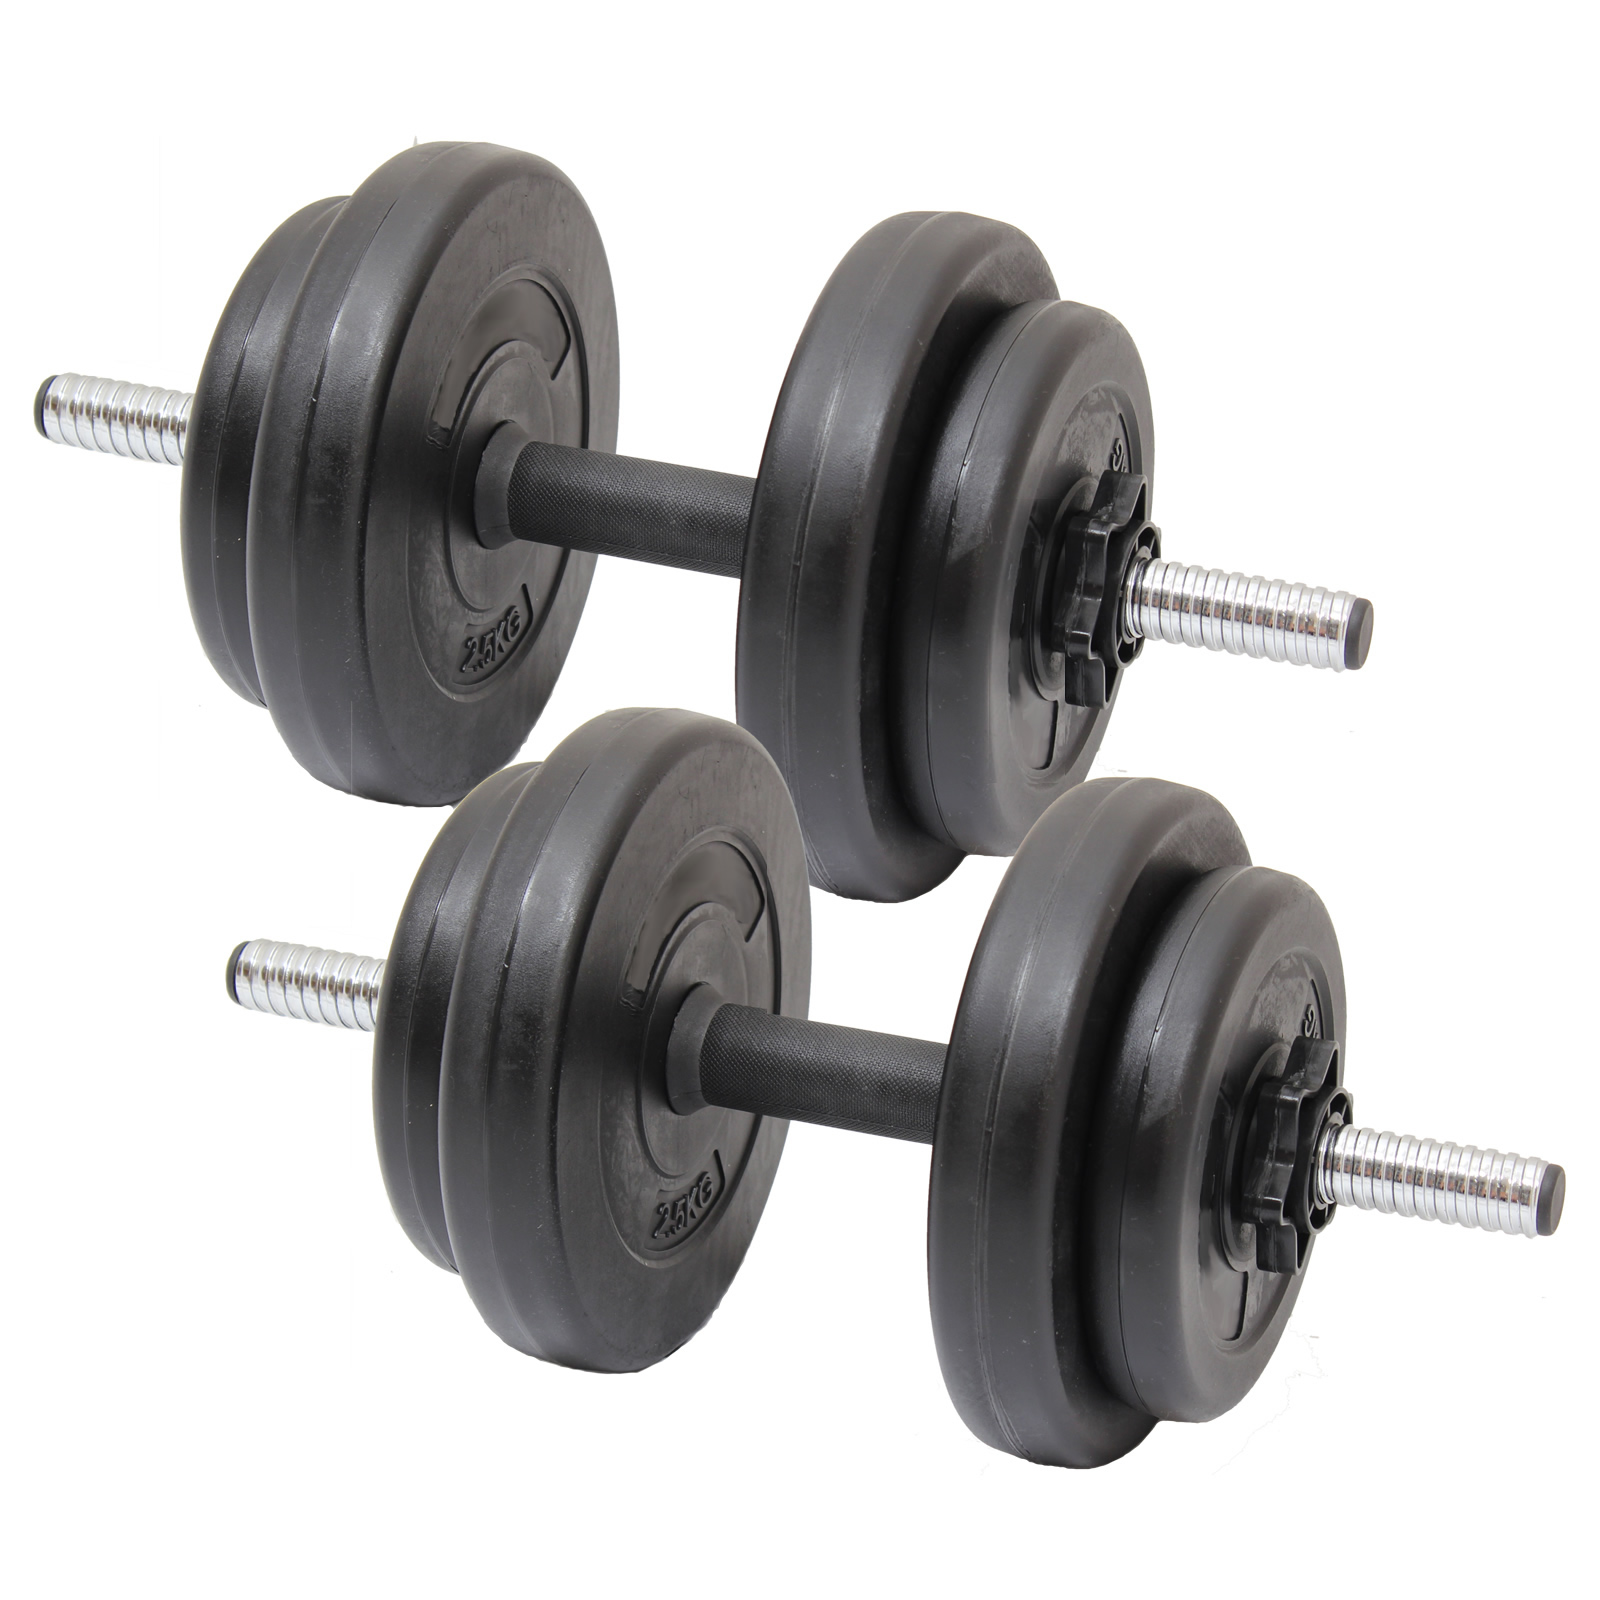 Best Home Dumbbell Set: 15KG DUMBBELL FREE WEIGHTS SET HOME GYM/WORKOUT/TRAINING